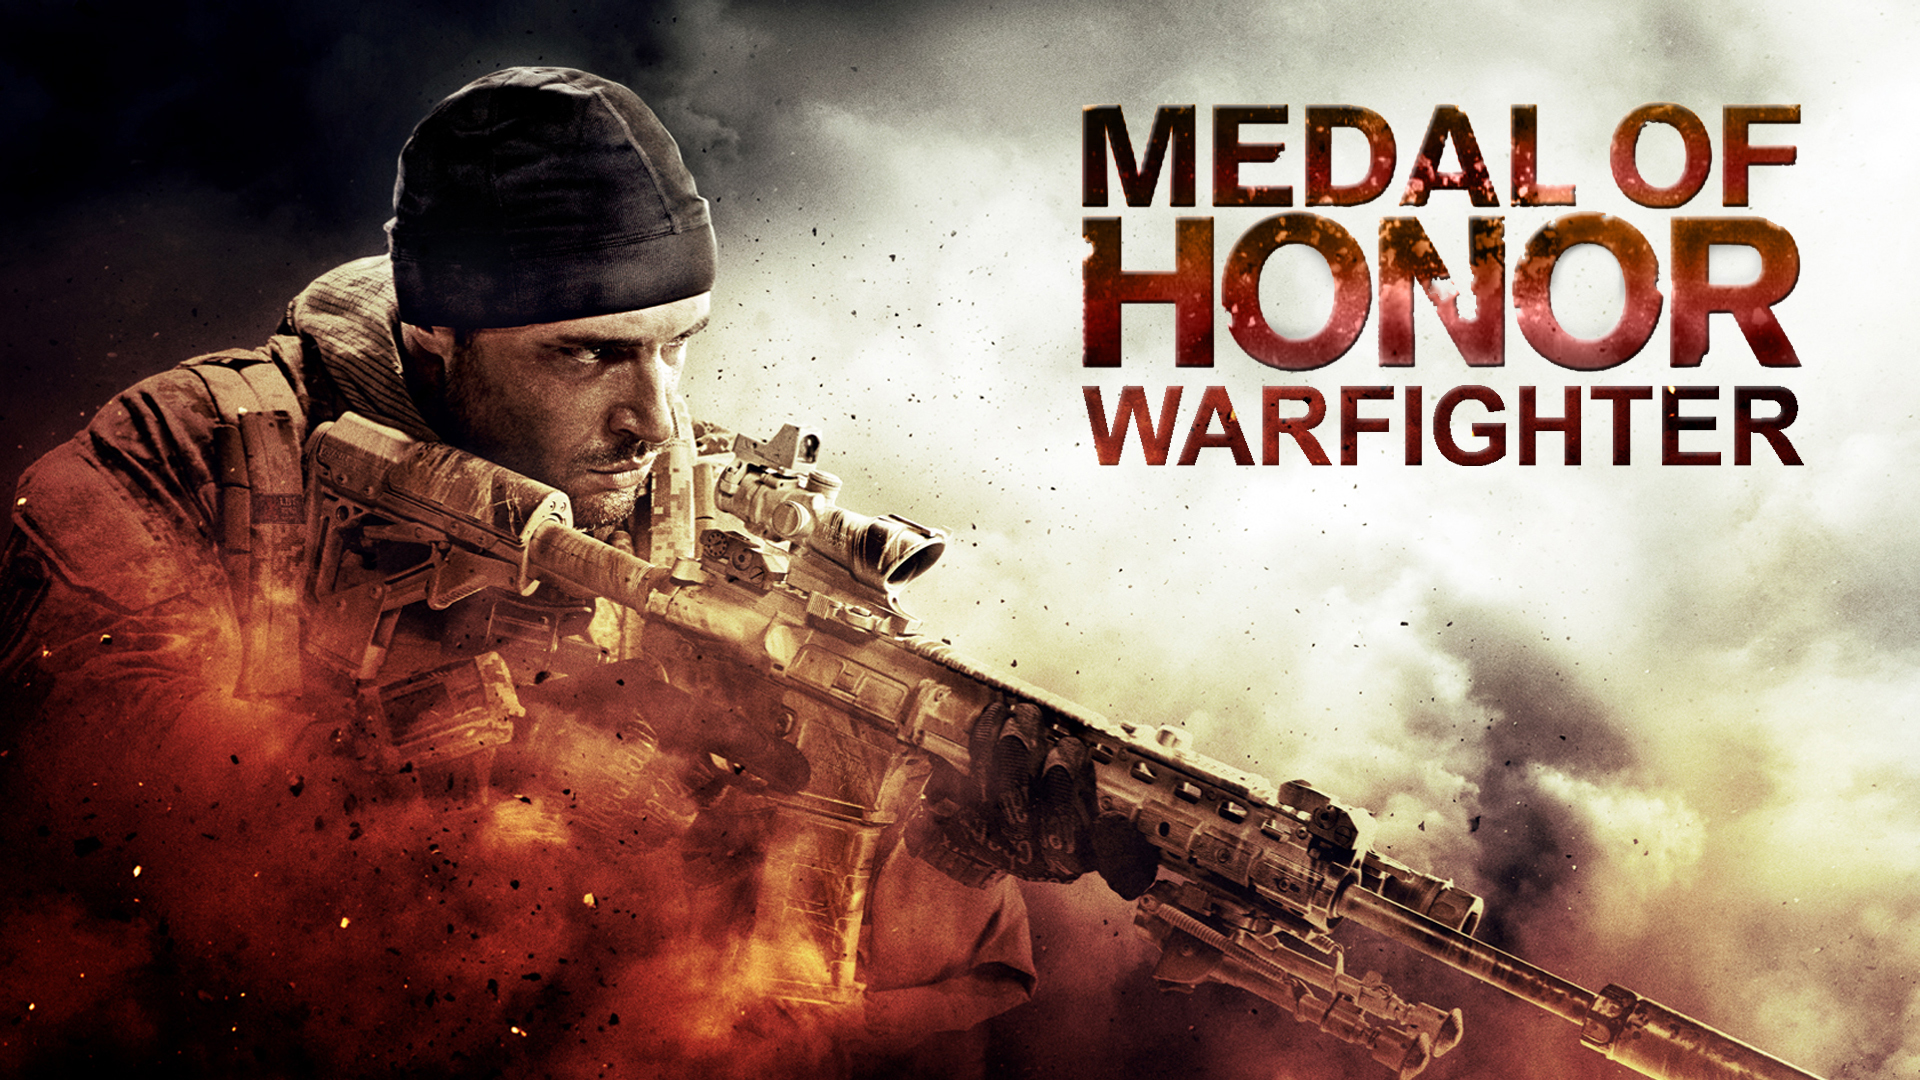 medal_of_honor_warfighter_by_declarck-d4s3f6k